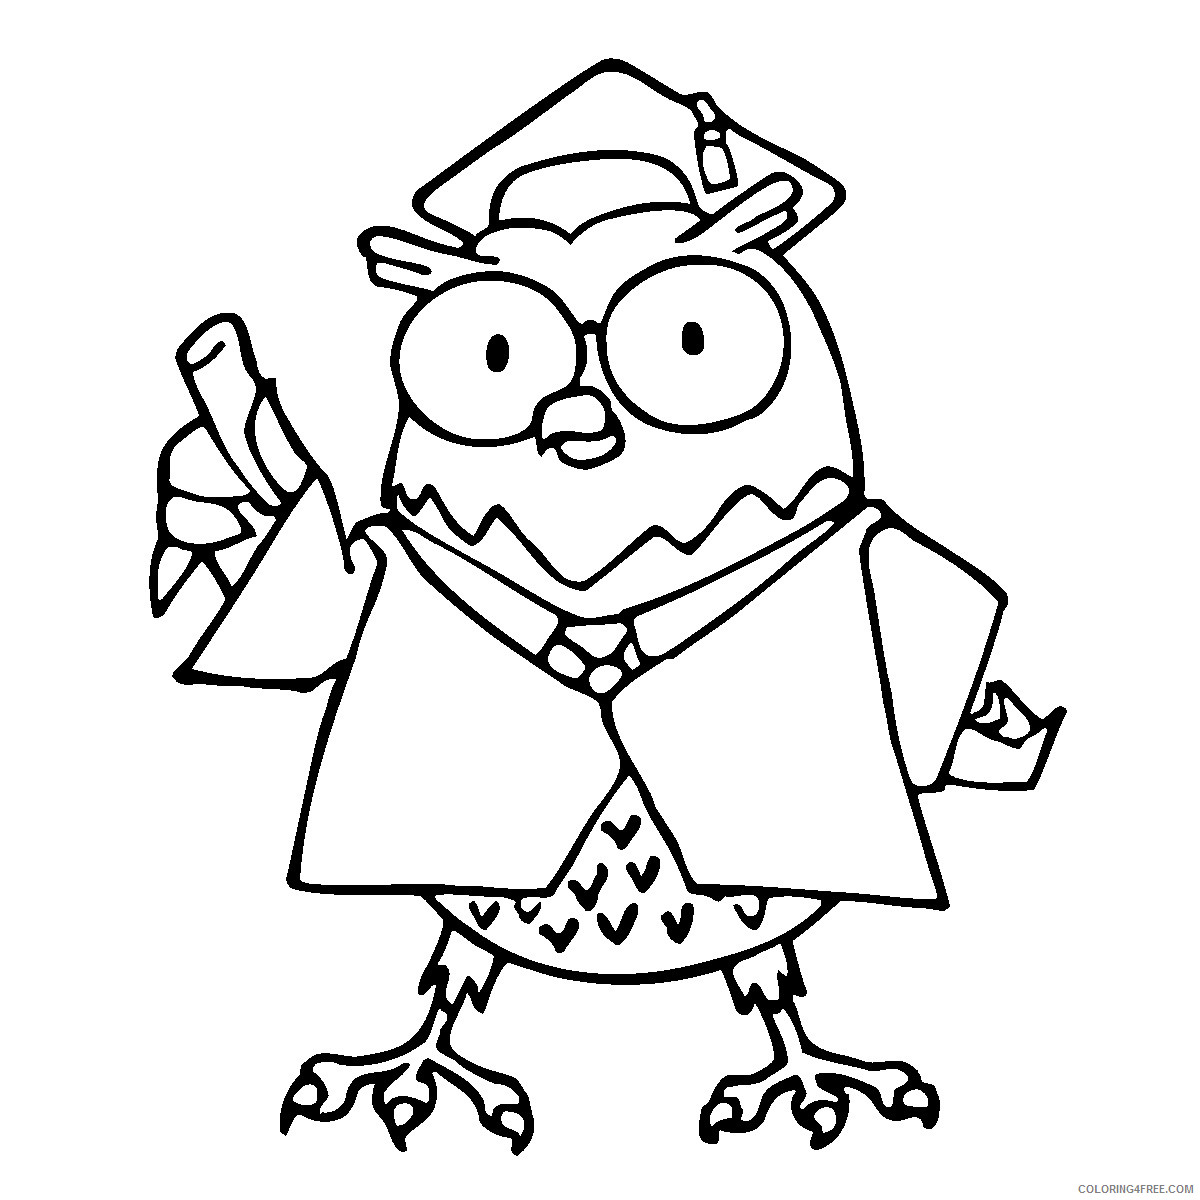 Owl Coloring Pages Coloring Pages owl free printable Printable Coloring4free